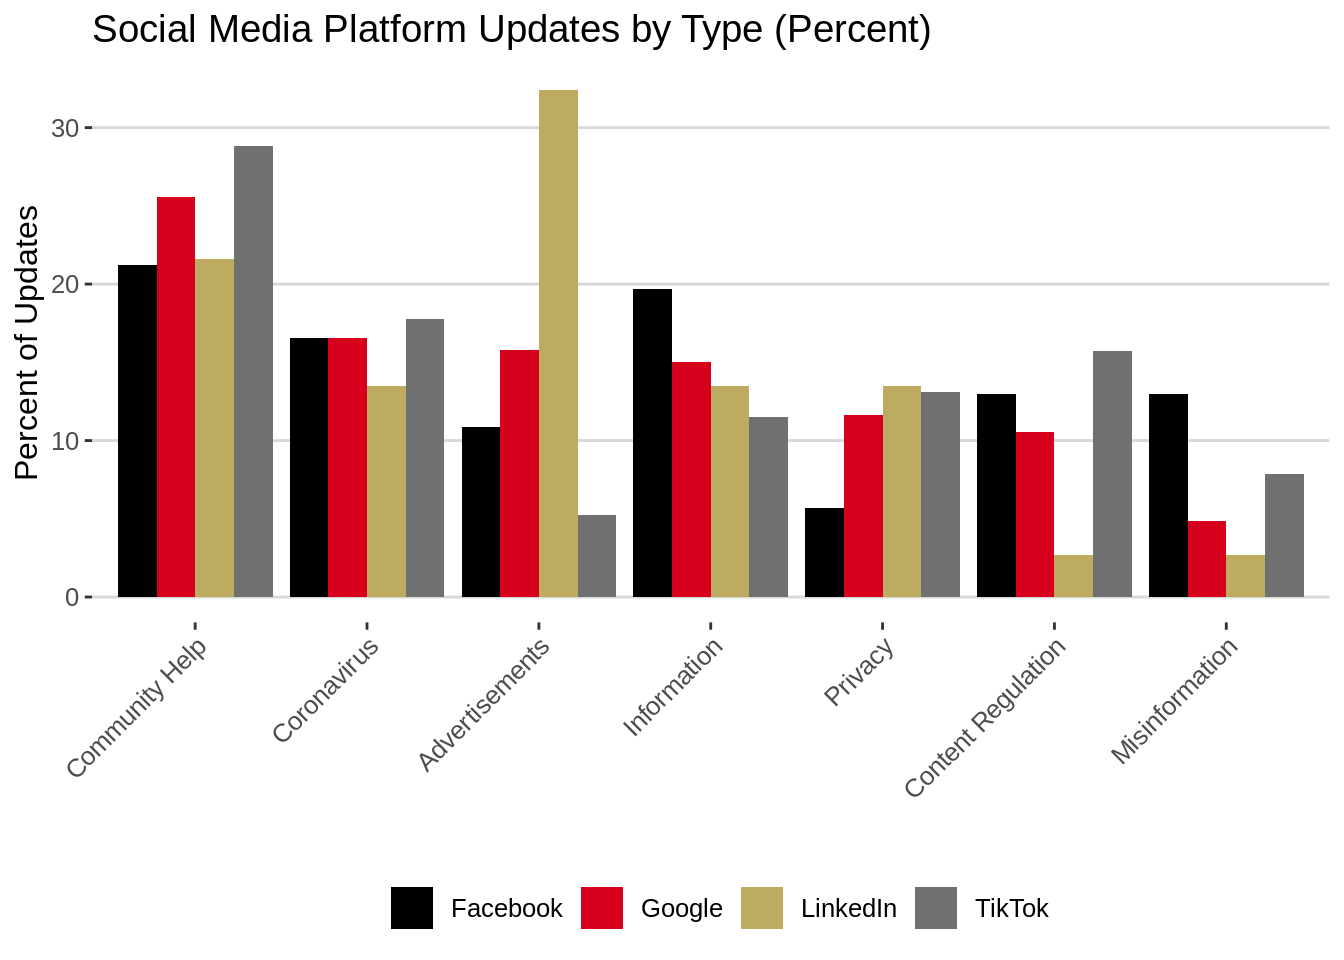 Graph showing social media platforms' updates by type (percent)